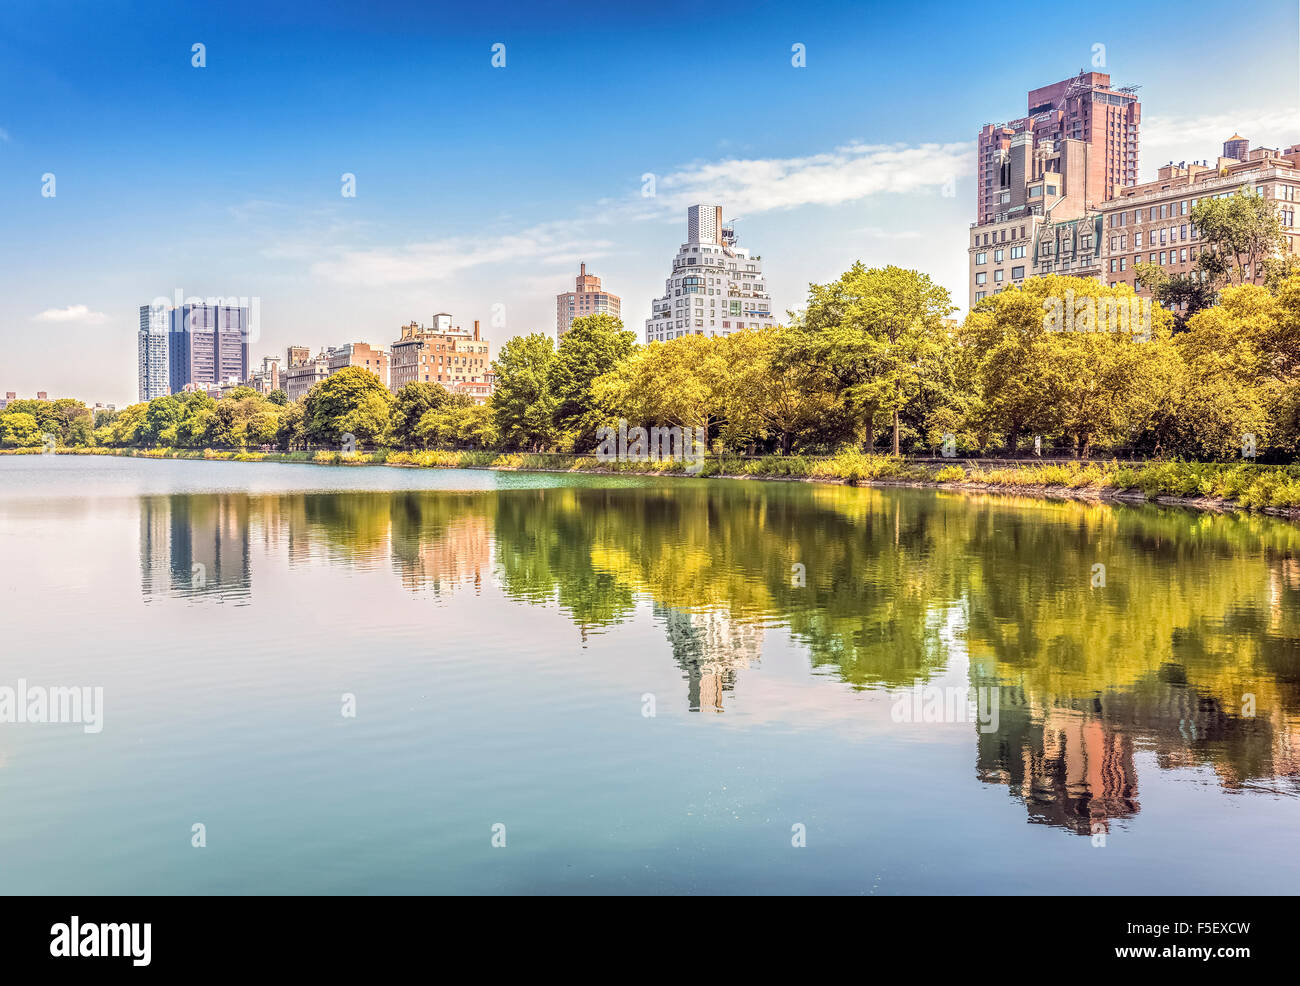 Central Park spiegelt sich im See, New York City, USA. Stockbild